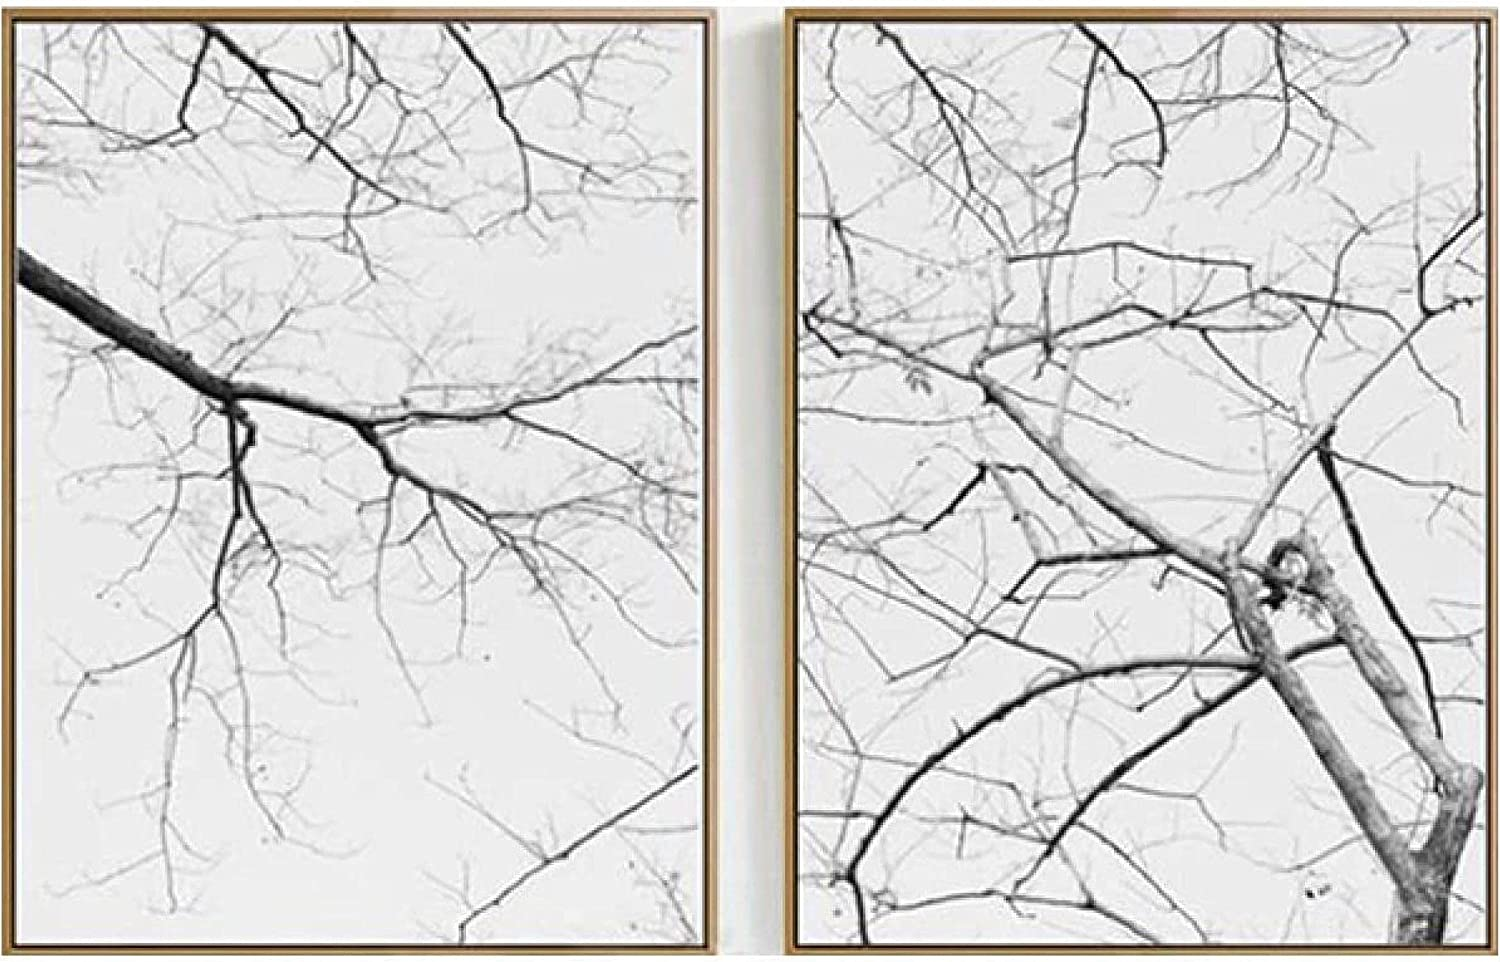 Bargain sale ZJRLY Beautiful Painting 2 Easy-to-use Piece 15.7x23.6in No A 40x60cm Frame